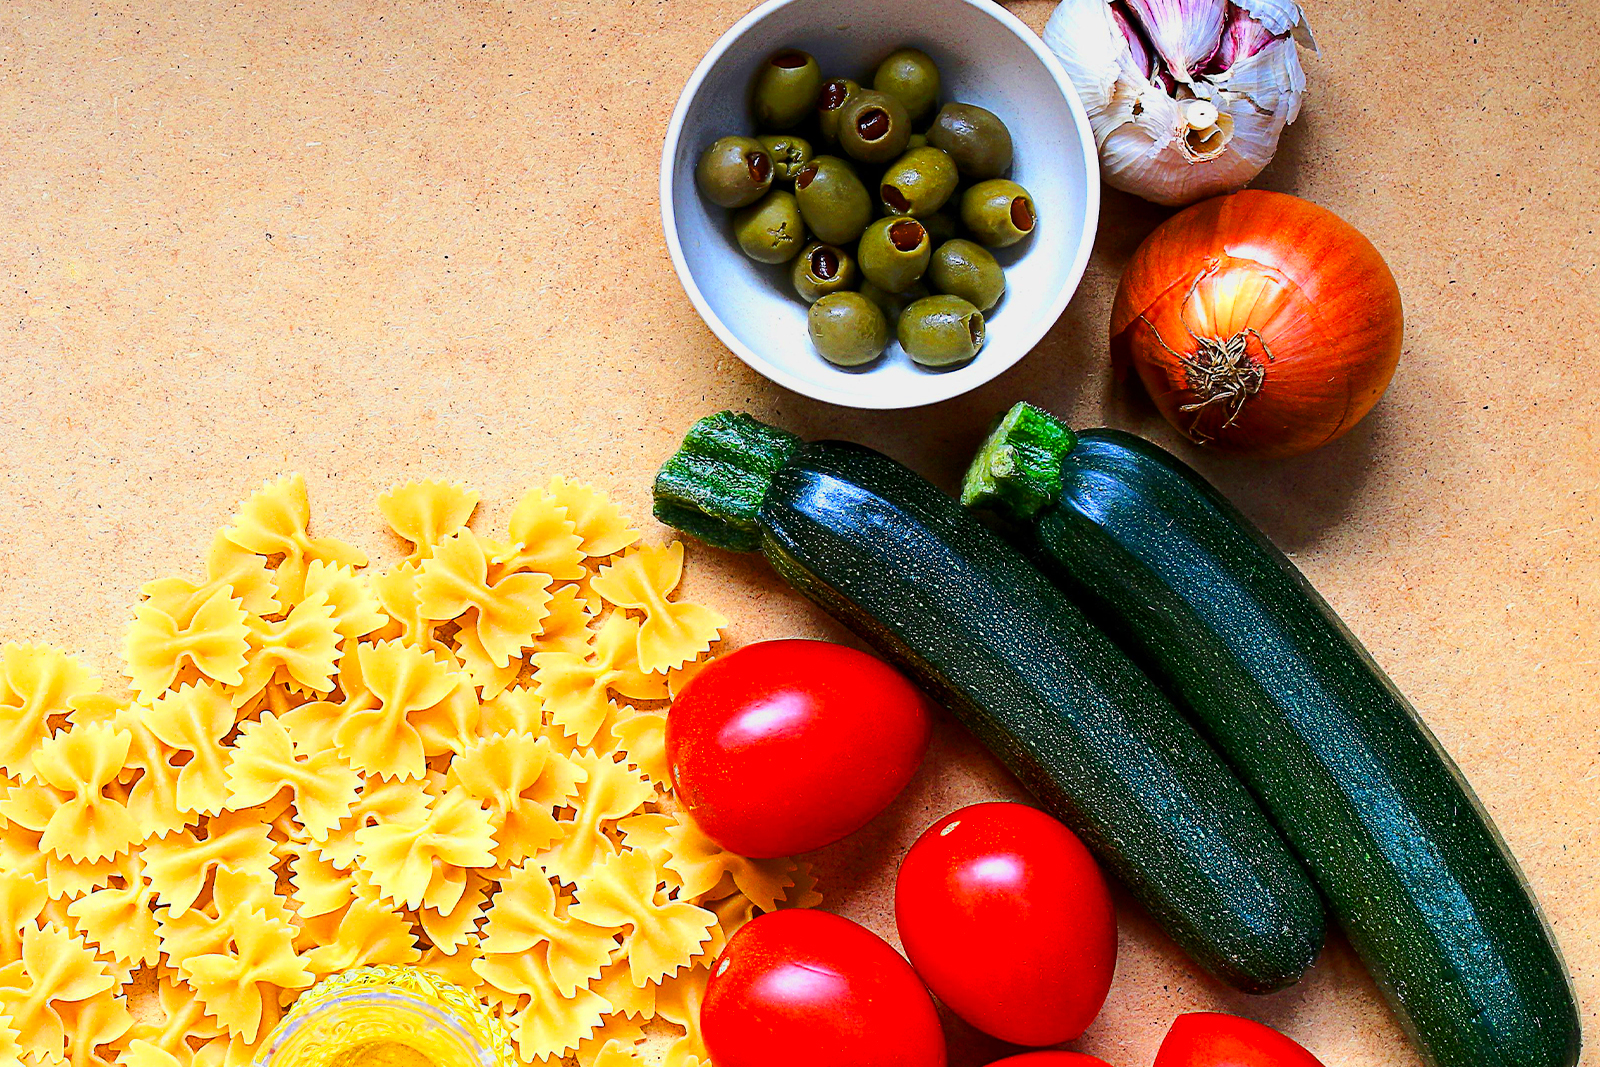 Olives, pasta, and other cooking ingredients